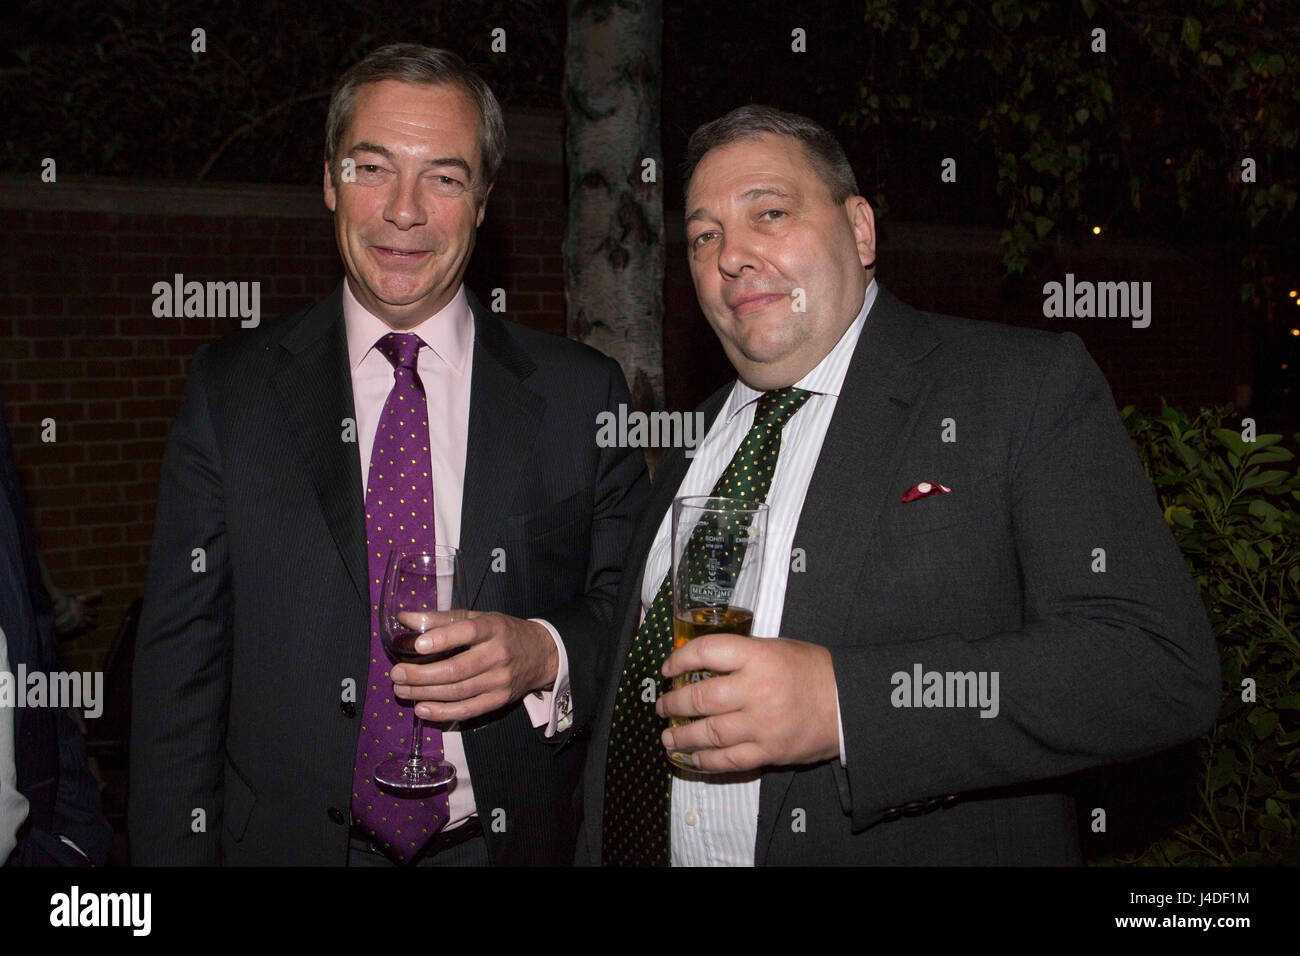 767297d1cfc5 Former Ukip leader Nigel Farage (left) with leader of Ukip Scotland David  Coburn (right) at the launch of Bill Etheridge s new book